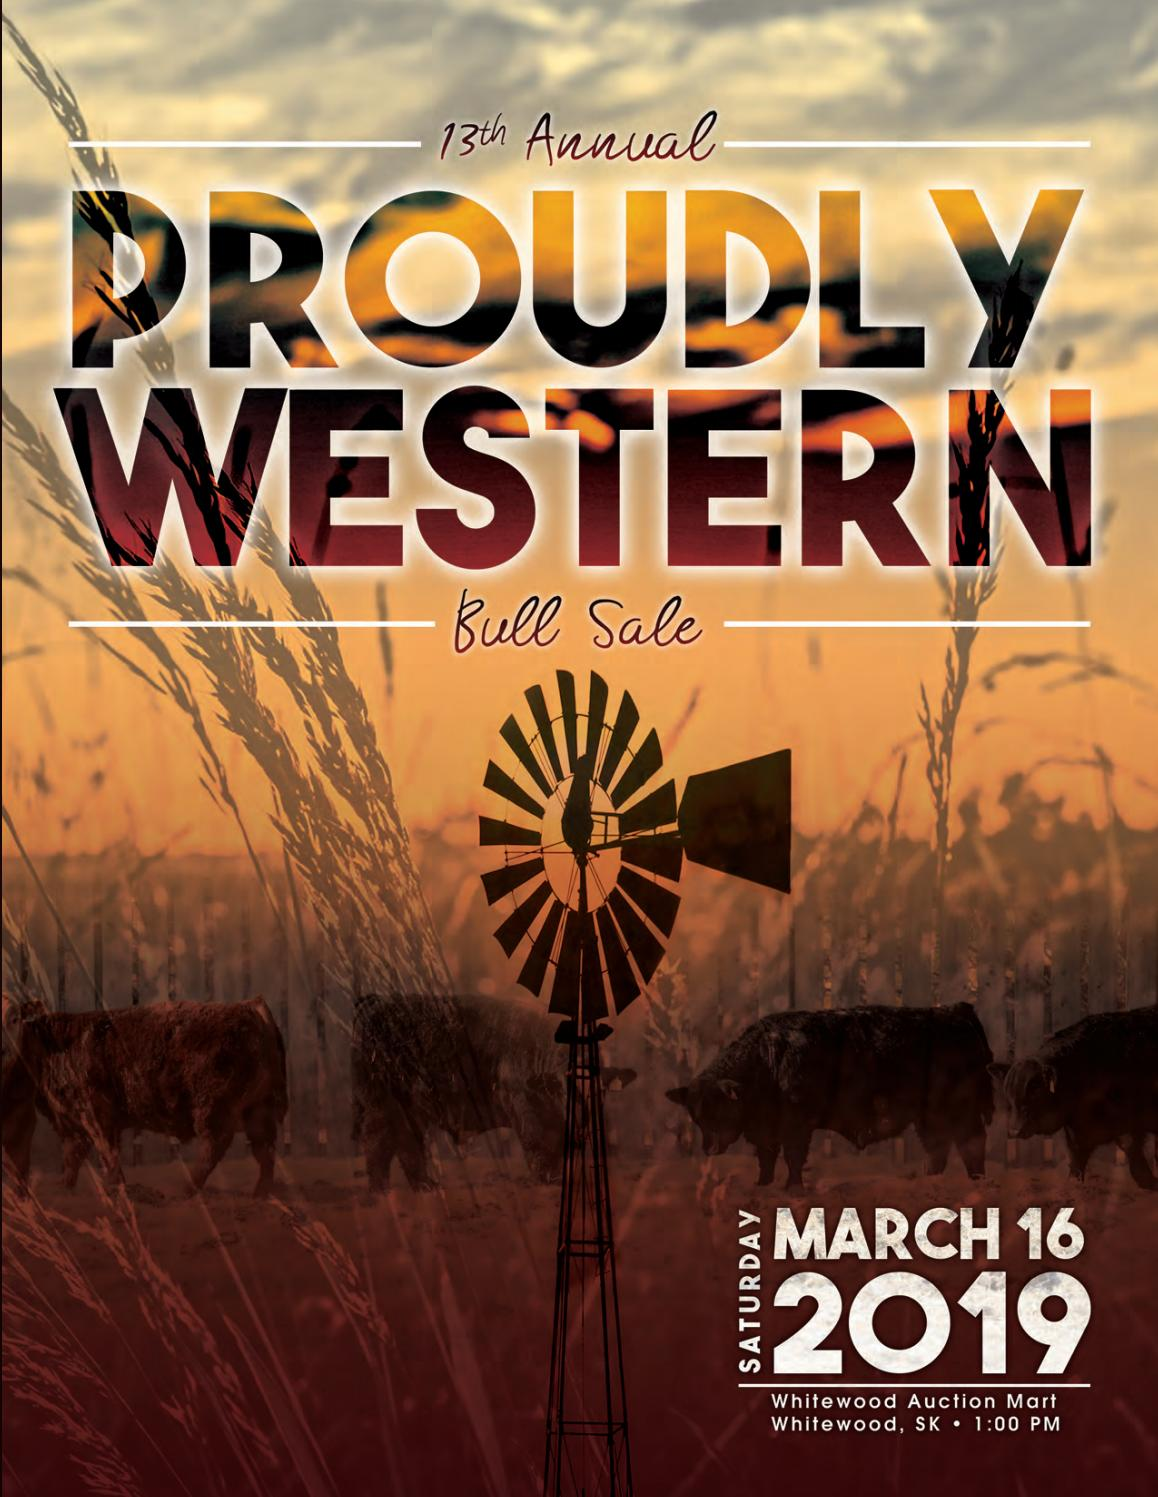 2019 Proudly Western Bull Sale by Today's Publishing Inc